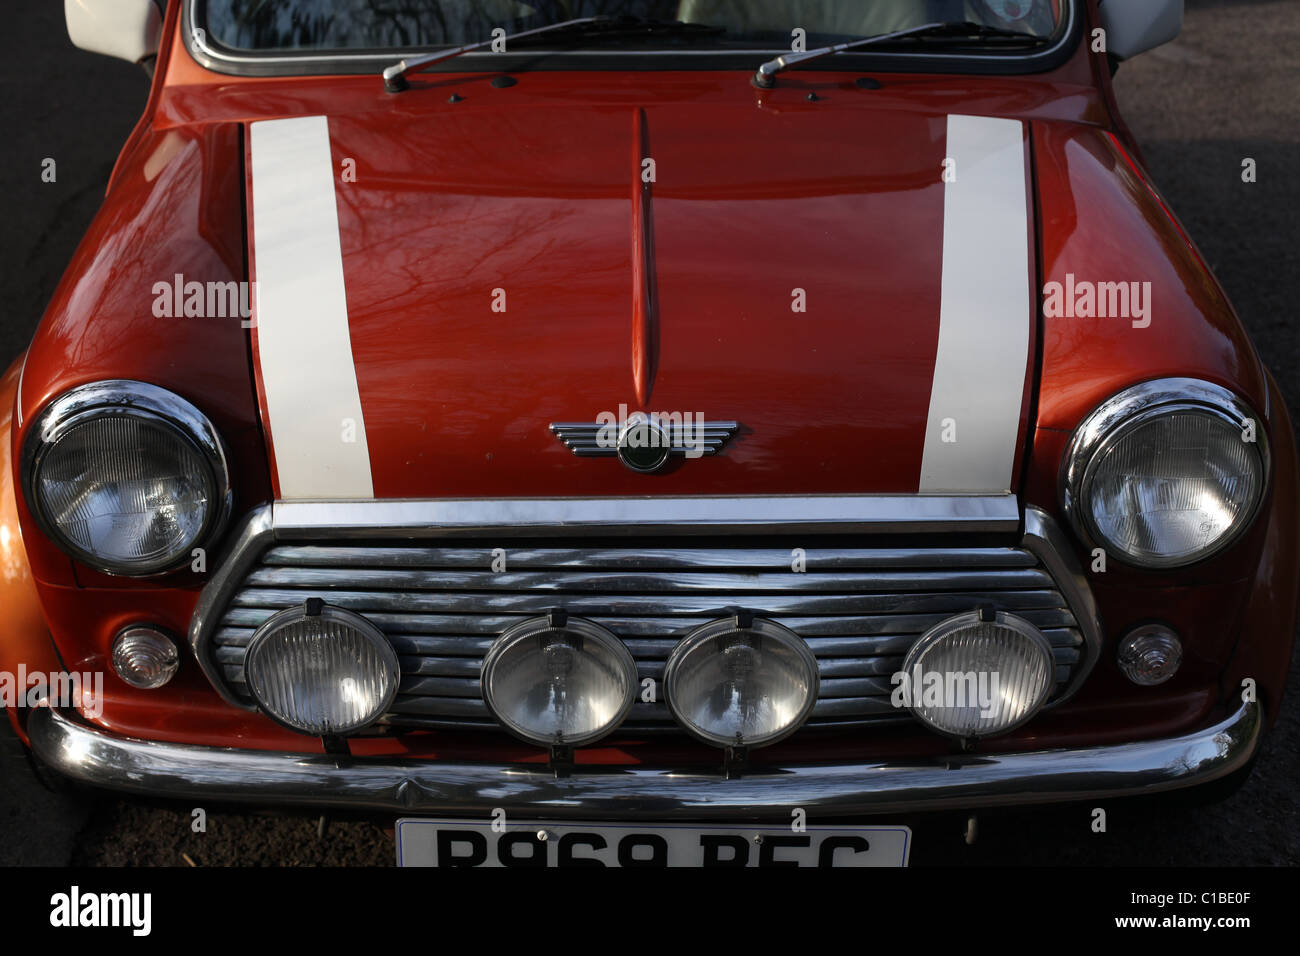 Detail of a classic Rover Mini car - Stock Image